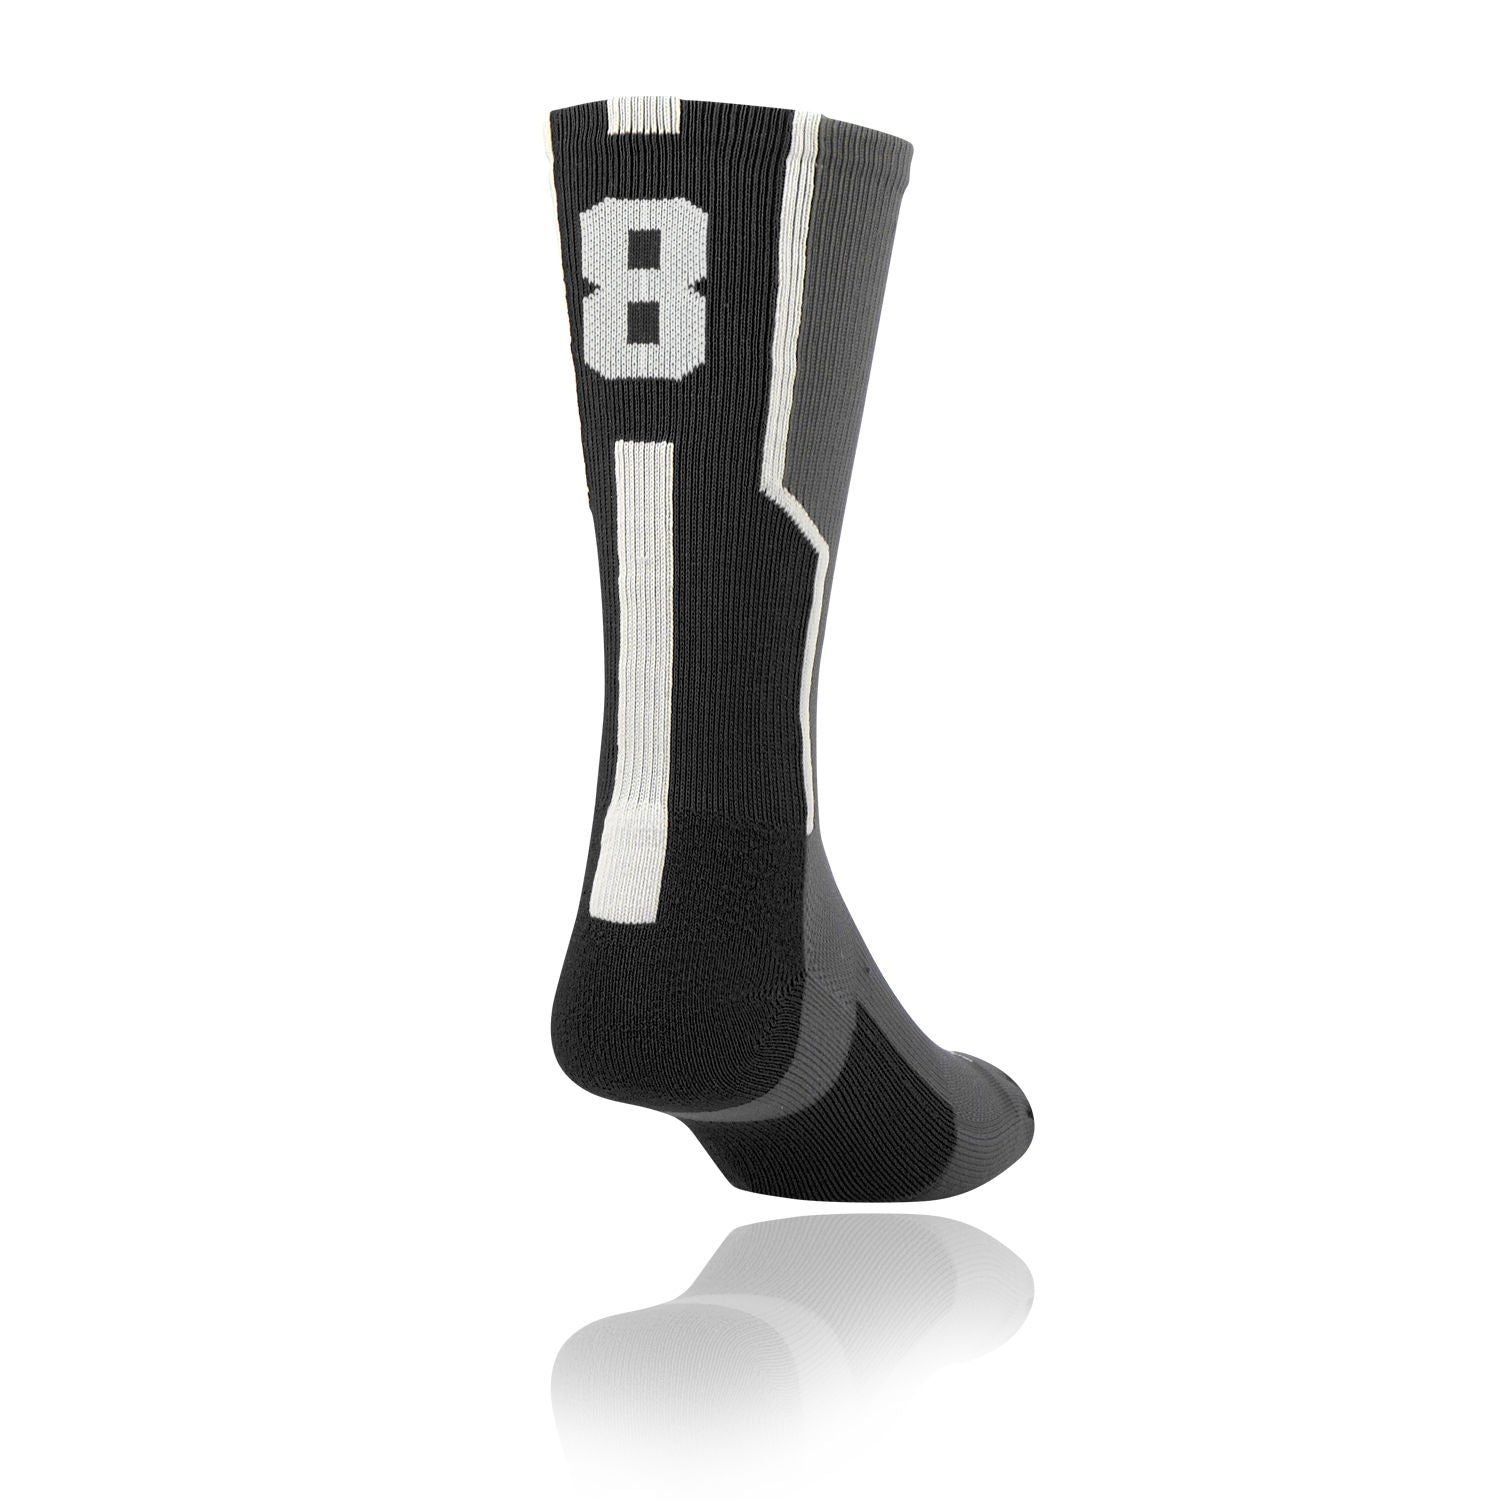 TCK Player ID Jersey Number Crew Socks Black, Graphite, White Singles